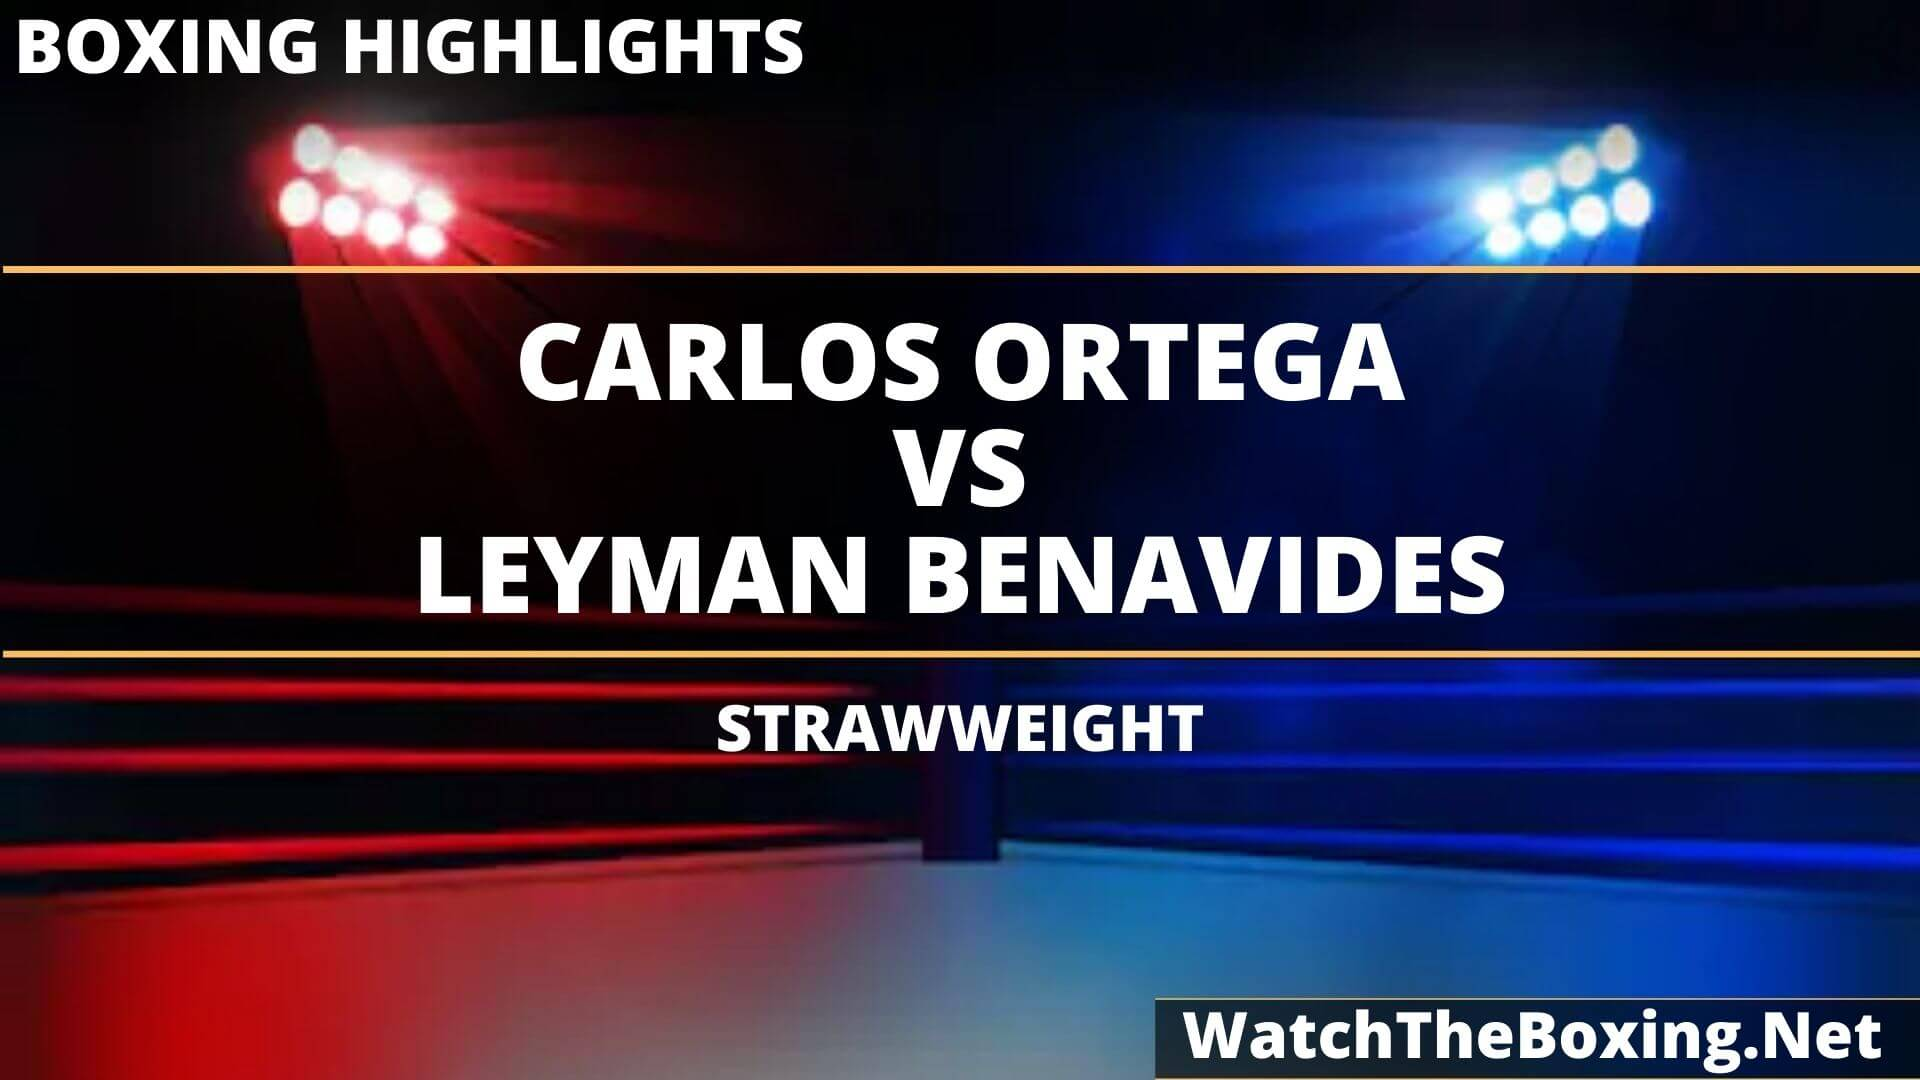 Carlos Ortega Vs Leyman Benavides Highlights 2020